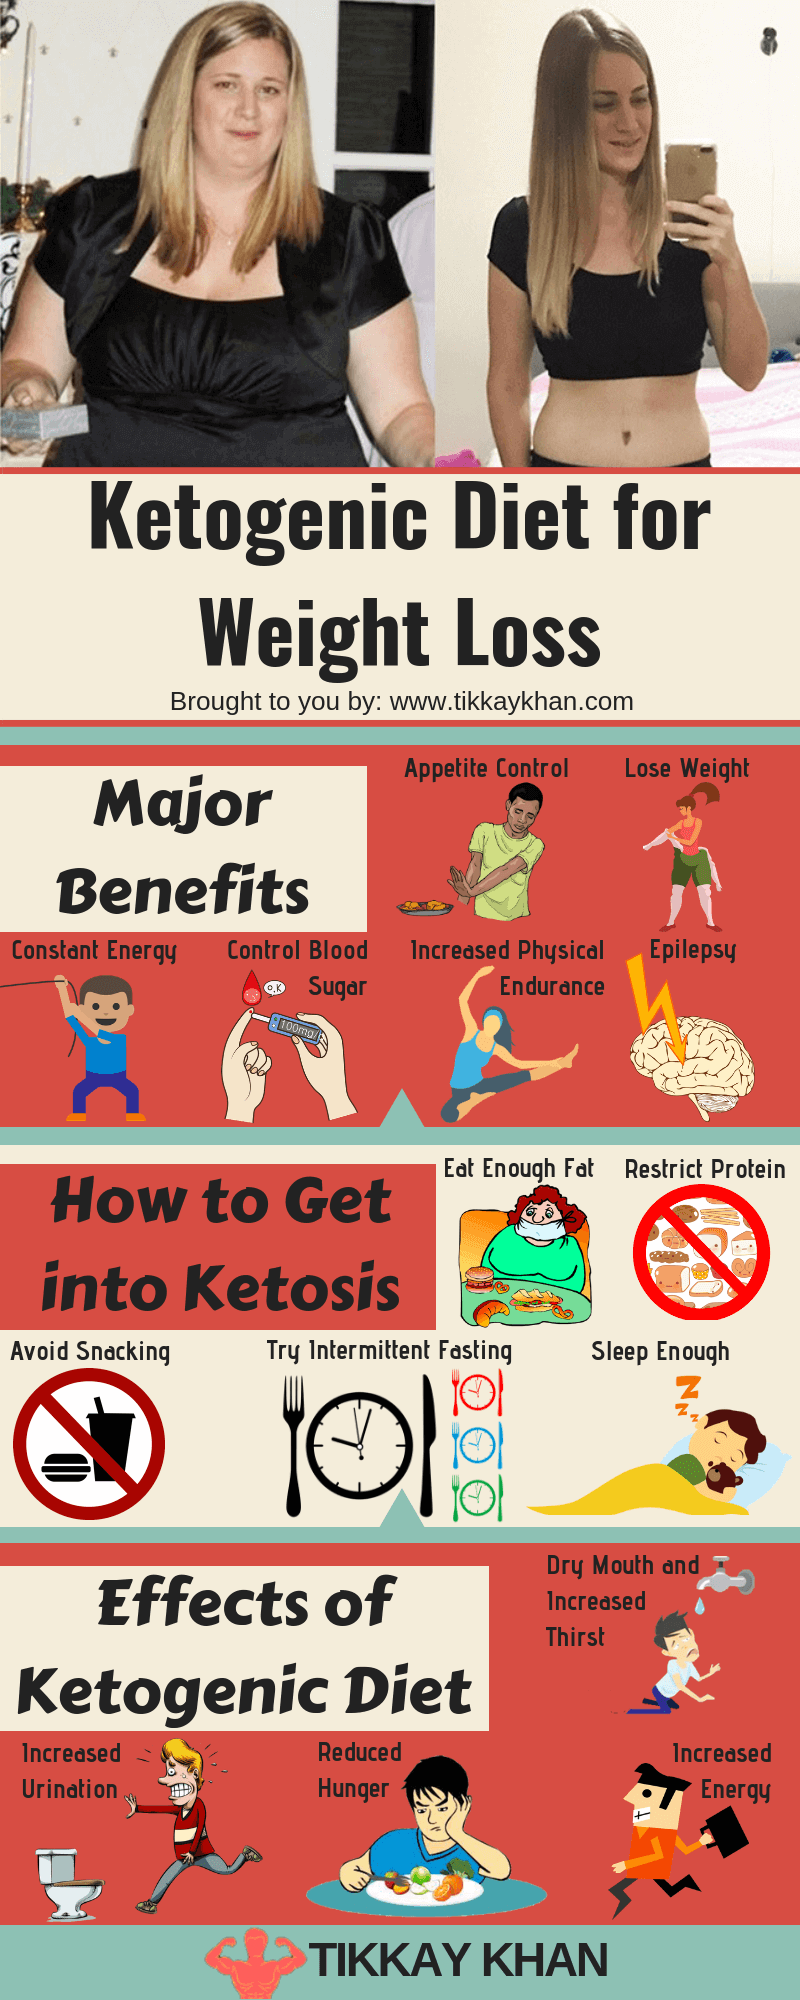 Ketogenic Diet for Weight Loss Infographic